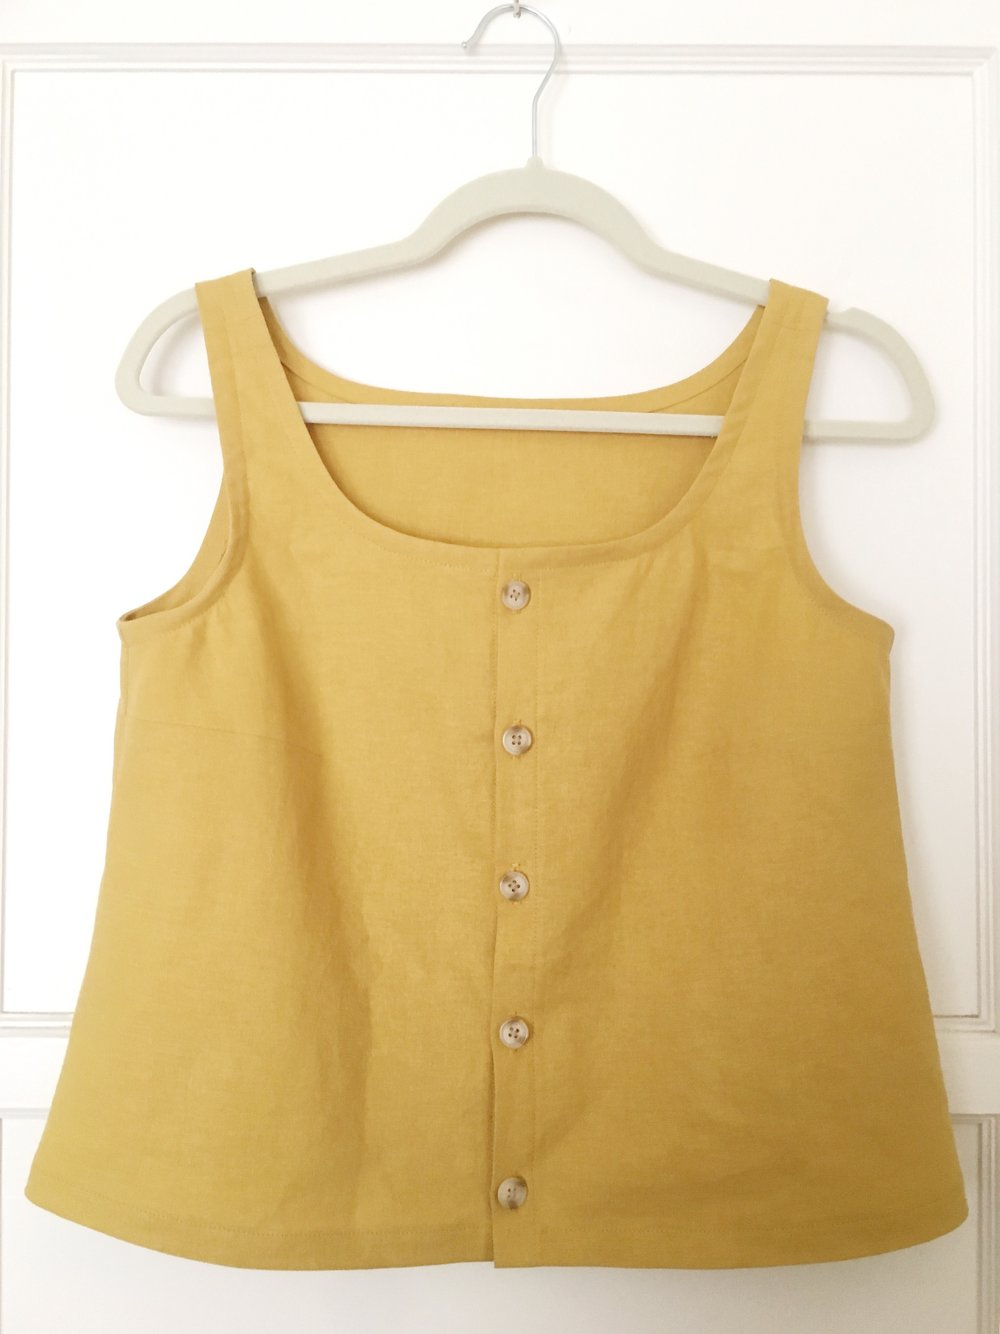 "I had enough gold linen/rayon left from my first Adelaide hack to whip this up as my first #sewingleftovers project.  Shauni is so inspiring and I'm really motivated to make good use of all my leftovers.  This top can be made up in about 24 inches of 50"" wide fabric.  Waste no more!"